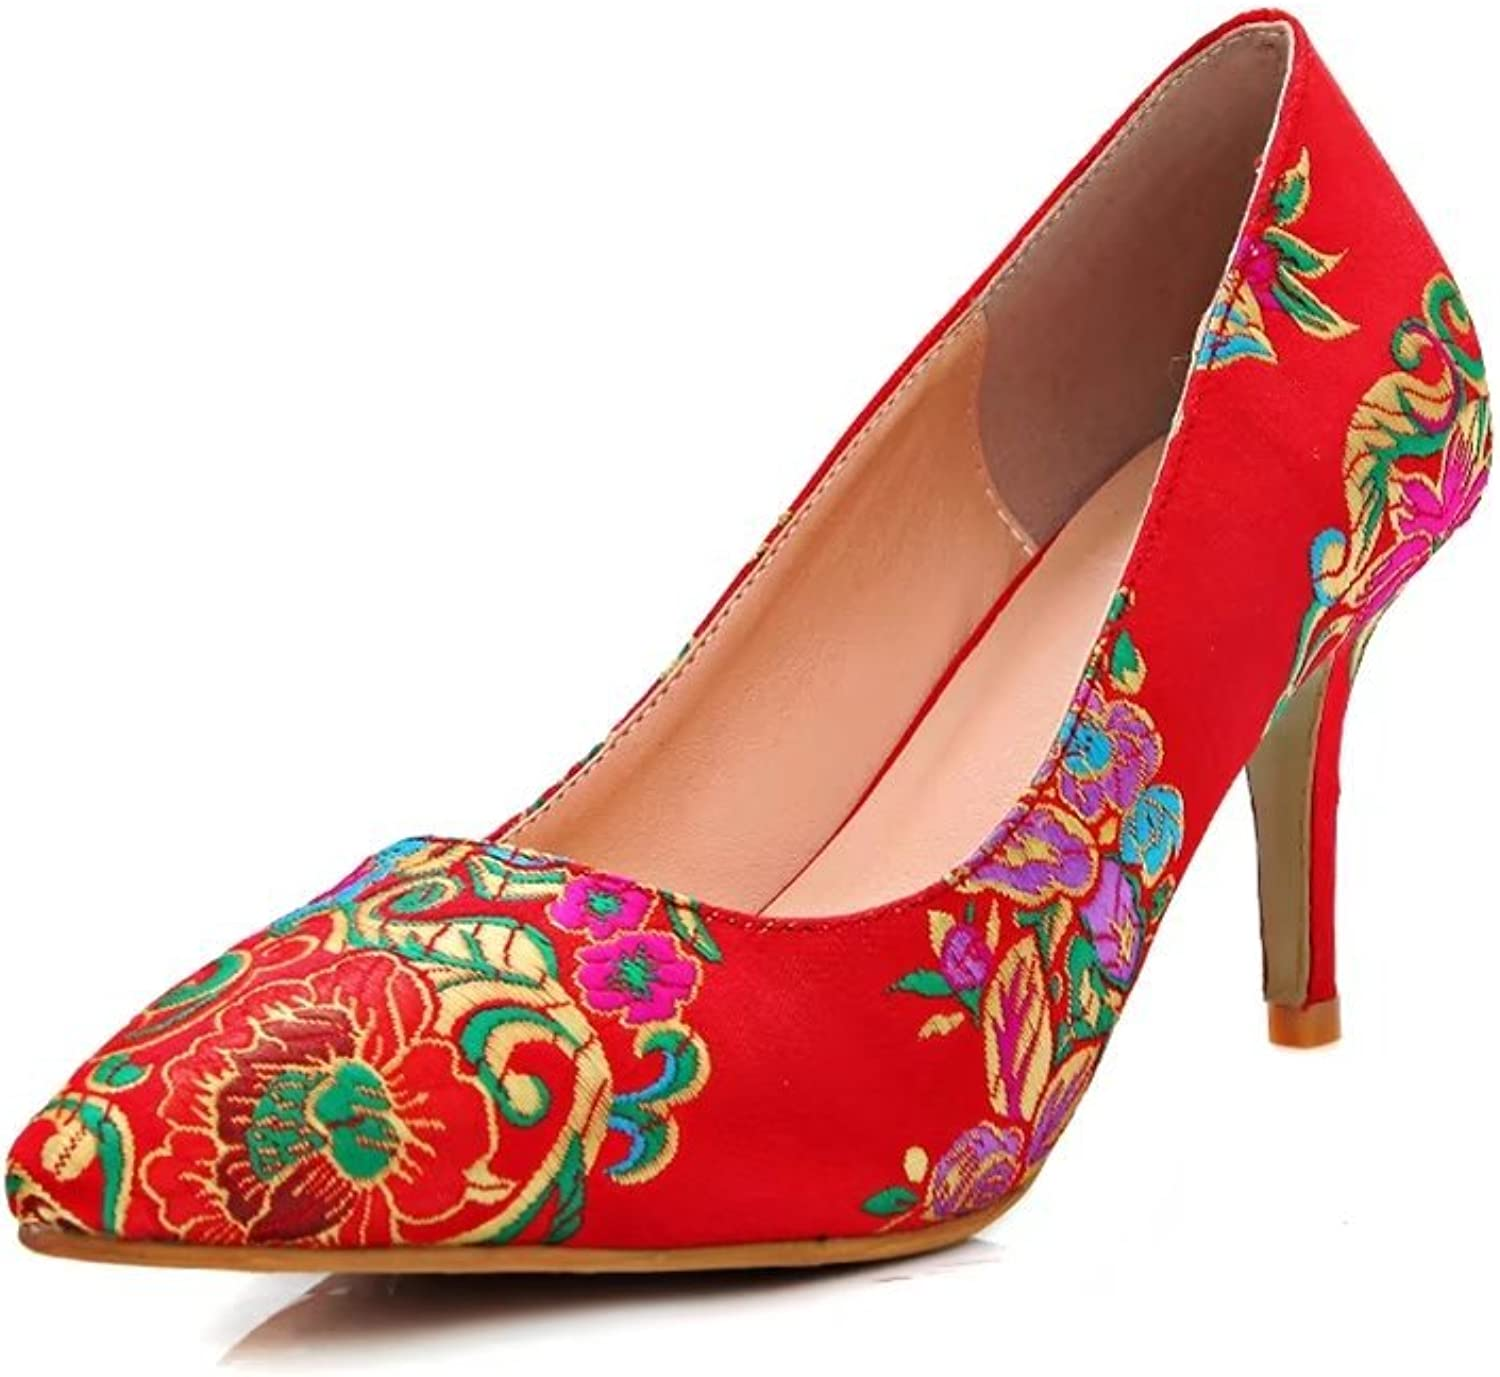 KingRover Women's Embroidery Slip On Low Heel Sexy Pointed Toe Pumps shoes